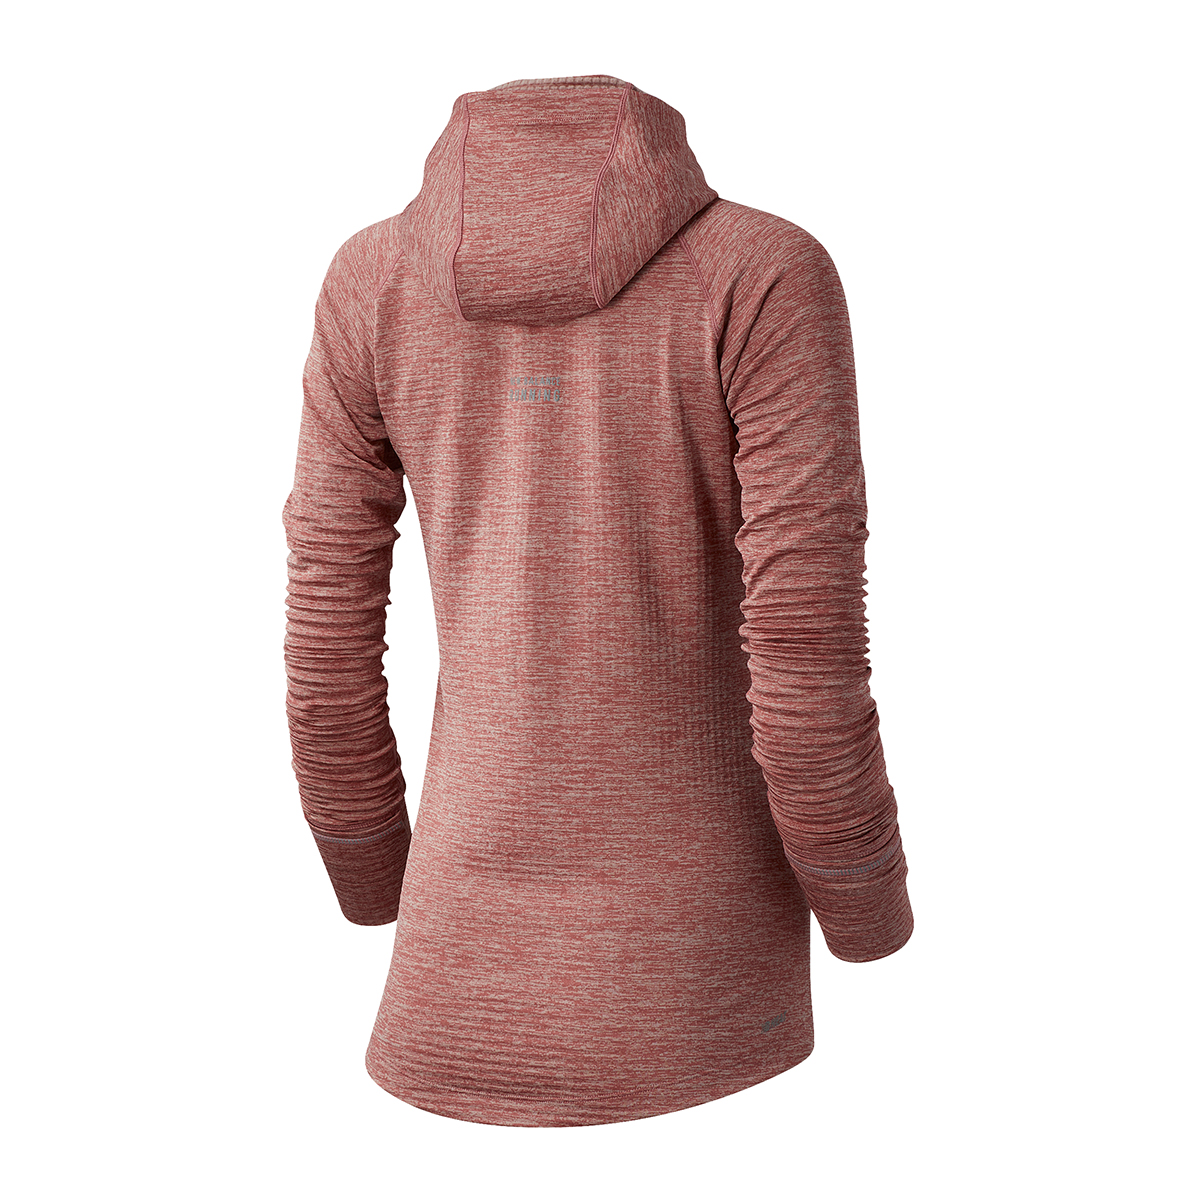 Women's New Balance Heat Grid Hoodie - Color: Pink - Size: XS, Pink, large, image 2